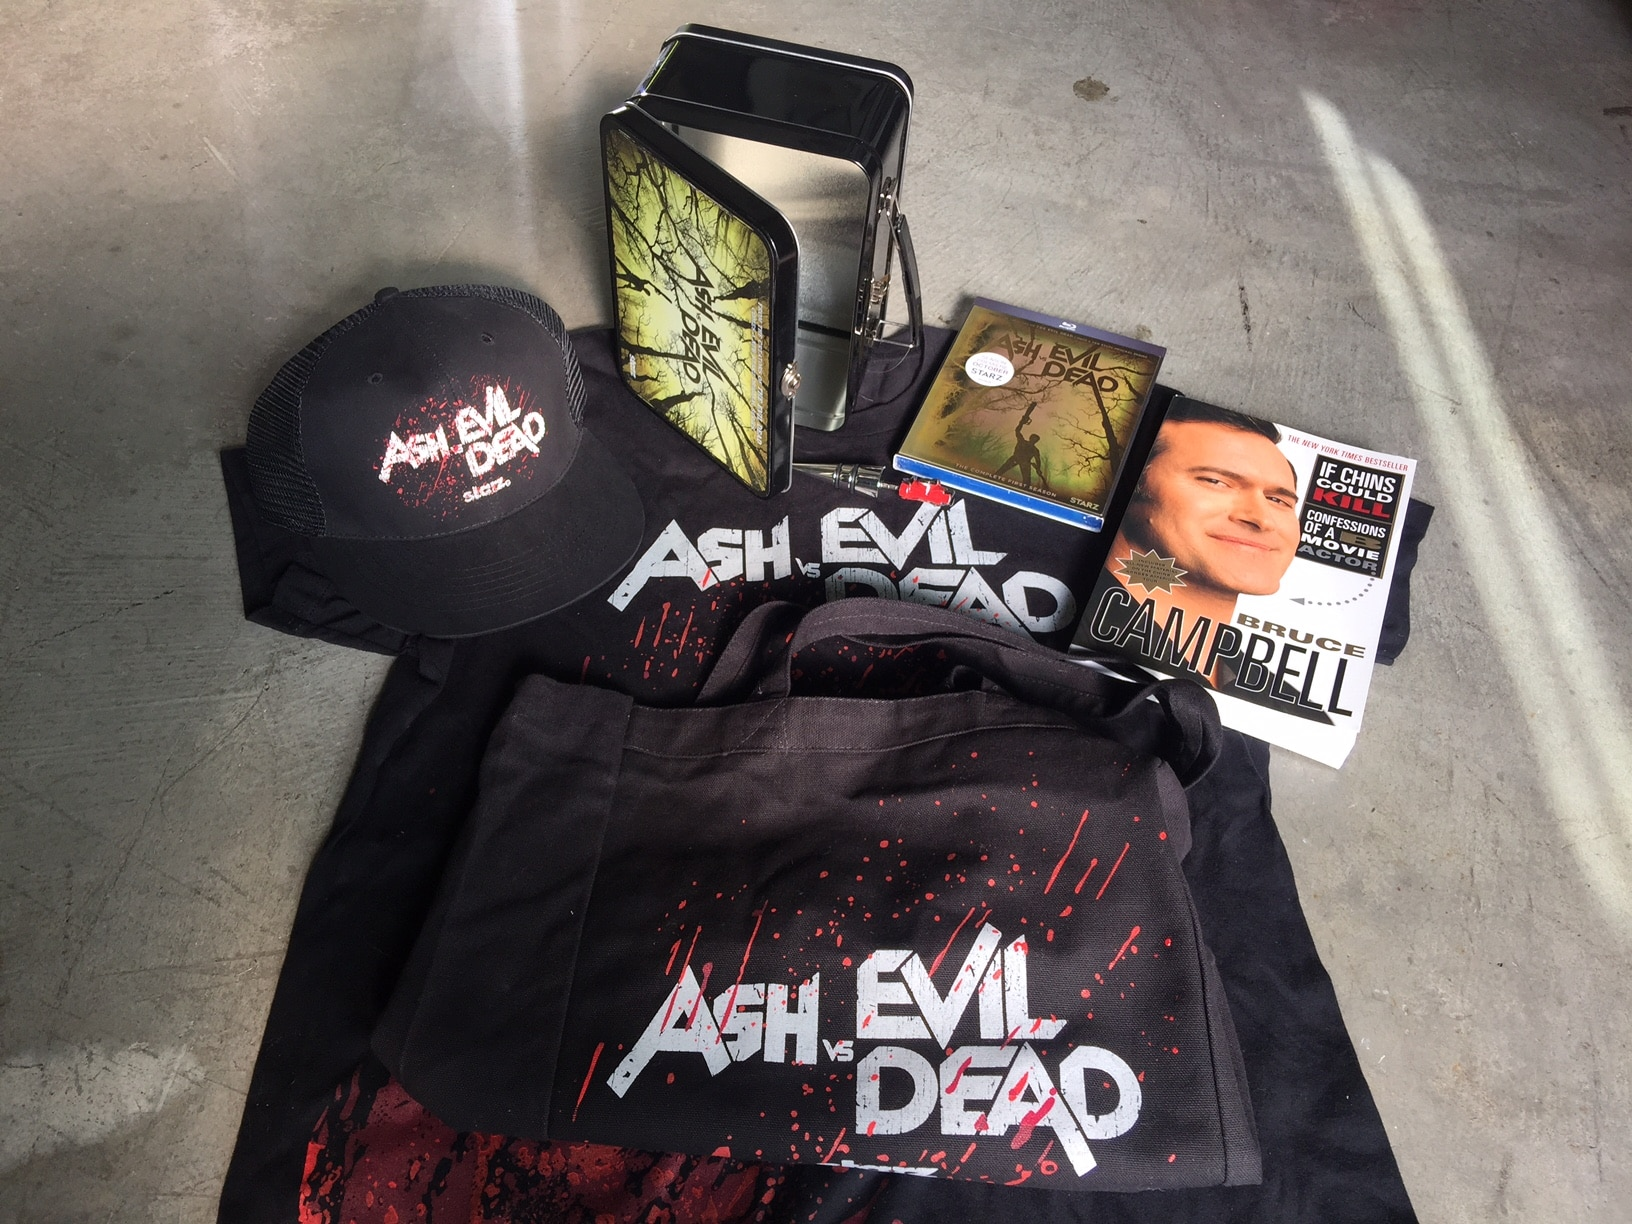 ash contest 1 - Win an Ash vs. Evil Dead Prize Package and More!